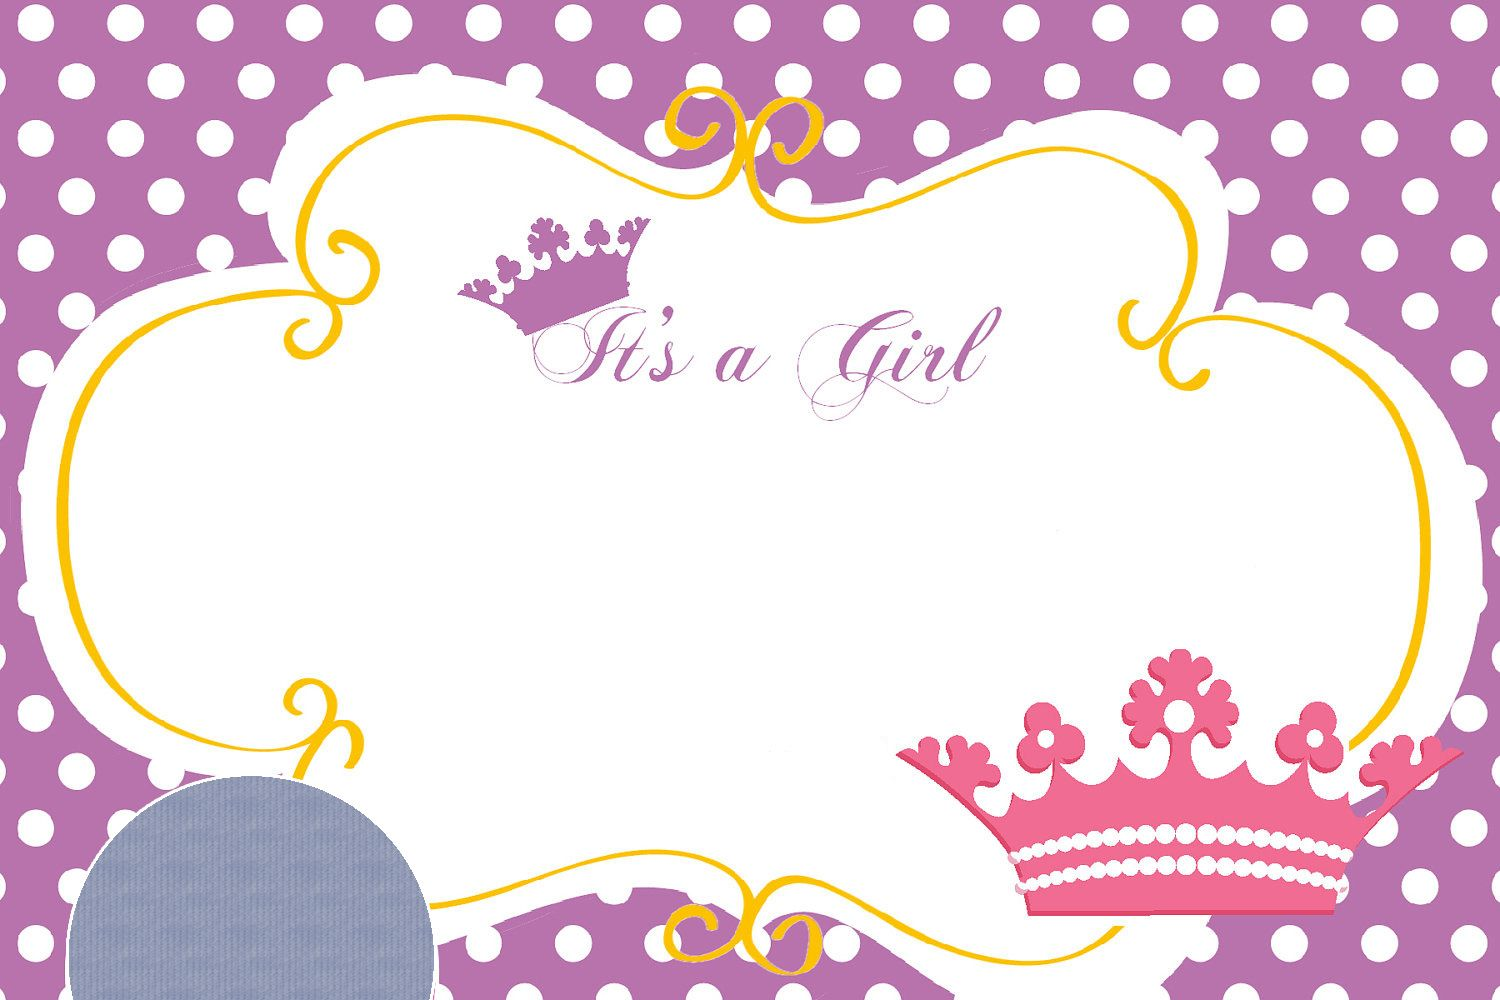 Download Free Printable Disney Princess Birthday Invitations Template